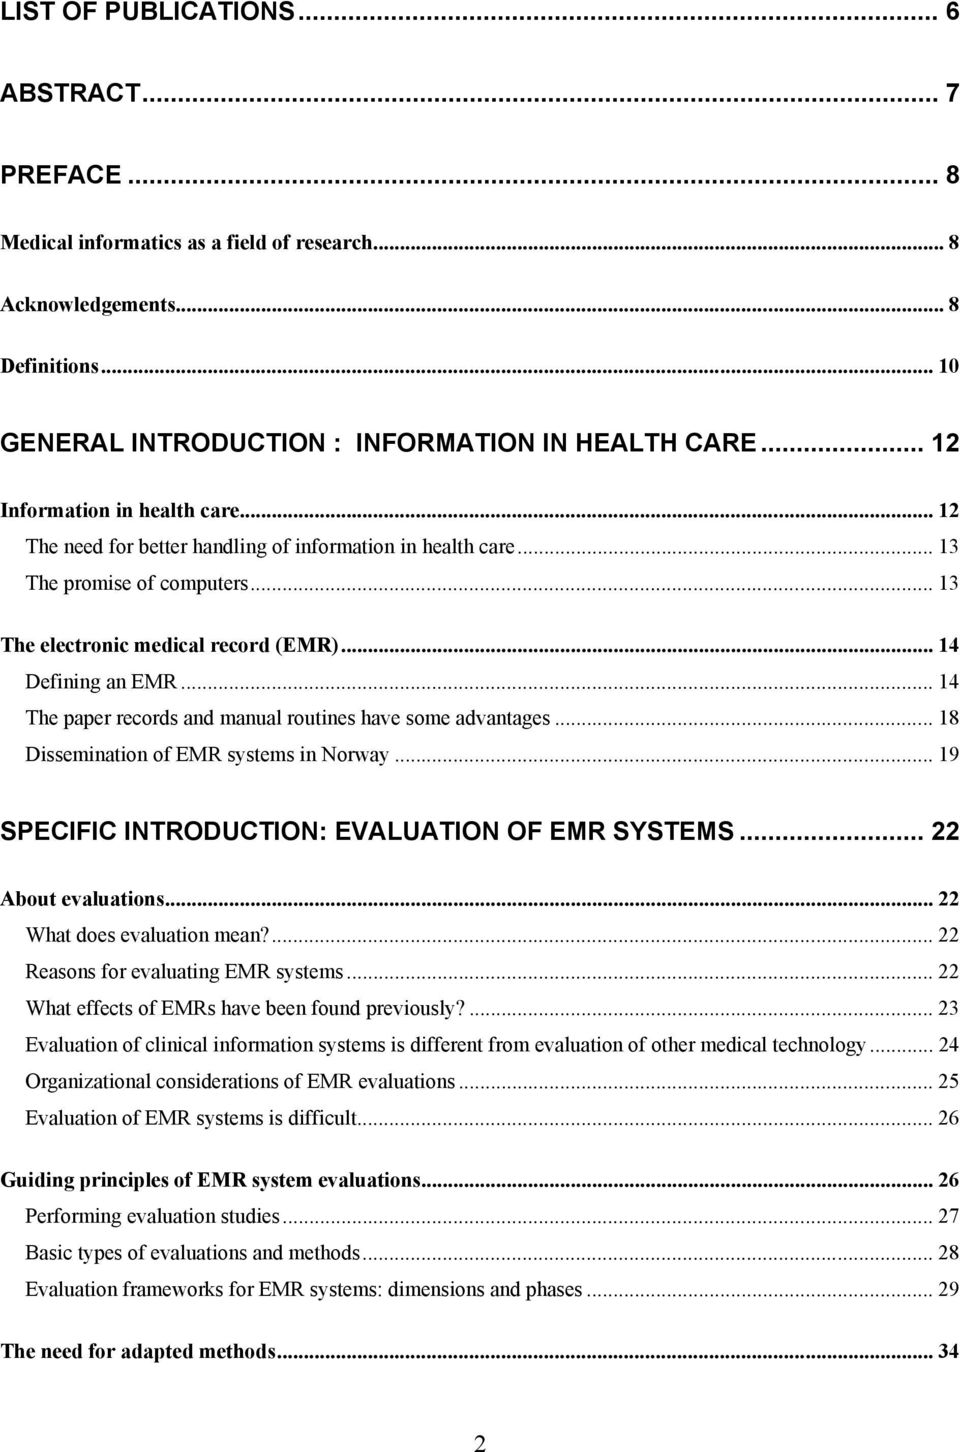 .. 14 The paper records and manual routines have some advantages... 18 Dissemination of EMR systems in Norway... 19 SPECIFIC INTRODUCTION: EVALUATION OF EMR SYSTEMS... 22 About evaluations.